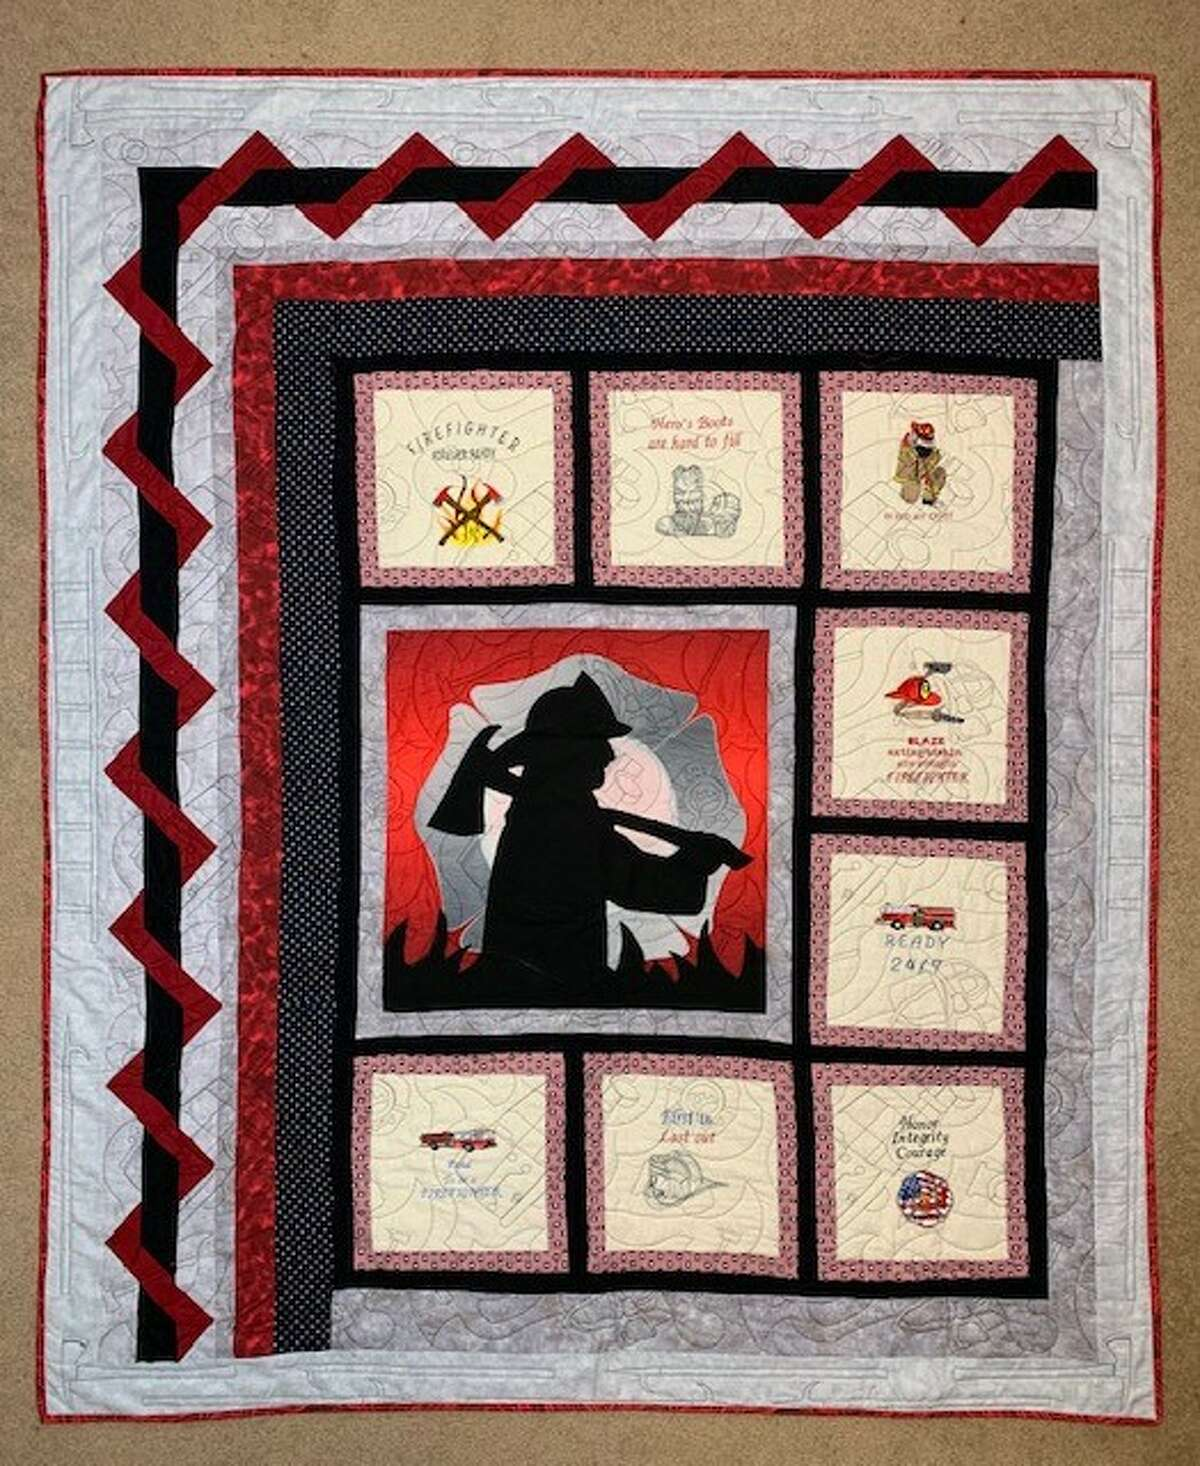 Floyd Country Christmas Ball organizers will auction off a special quilt.